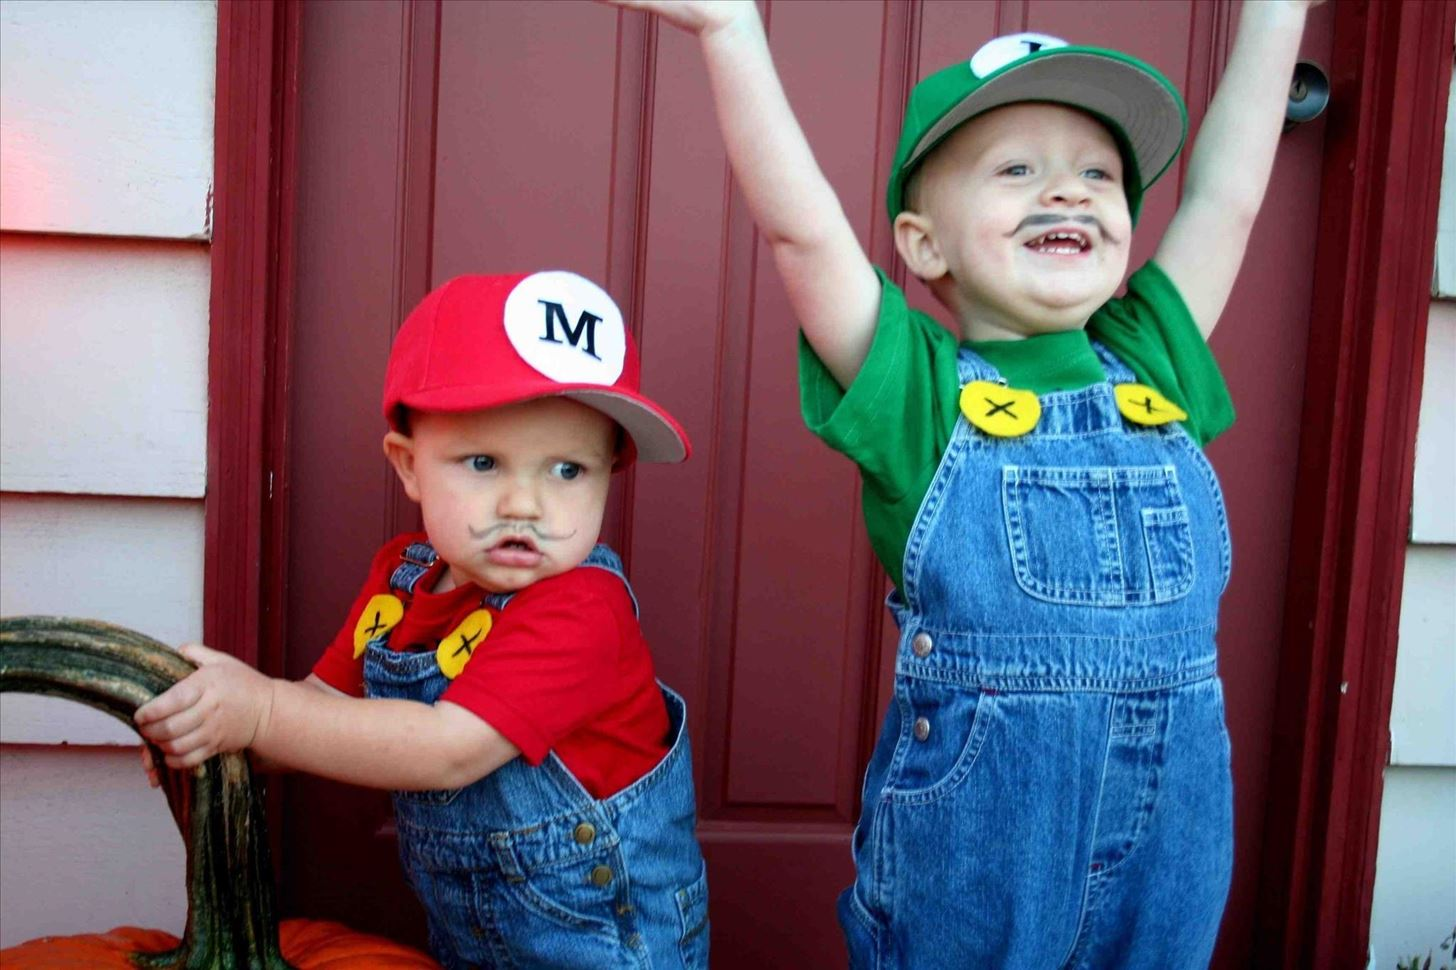 10diy super mario brothers costume - Cheap Halloween Dresses